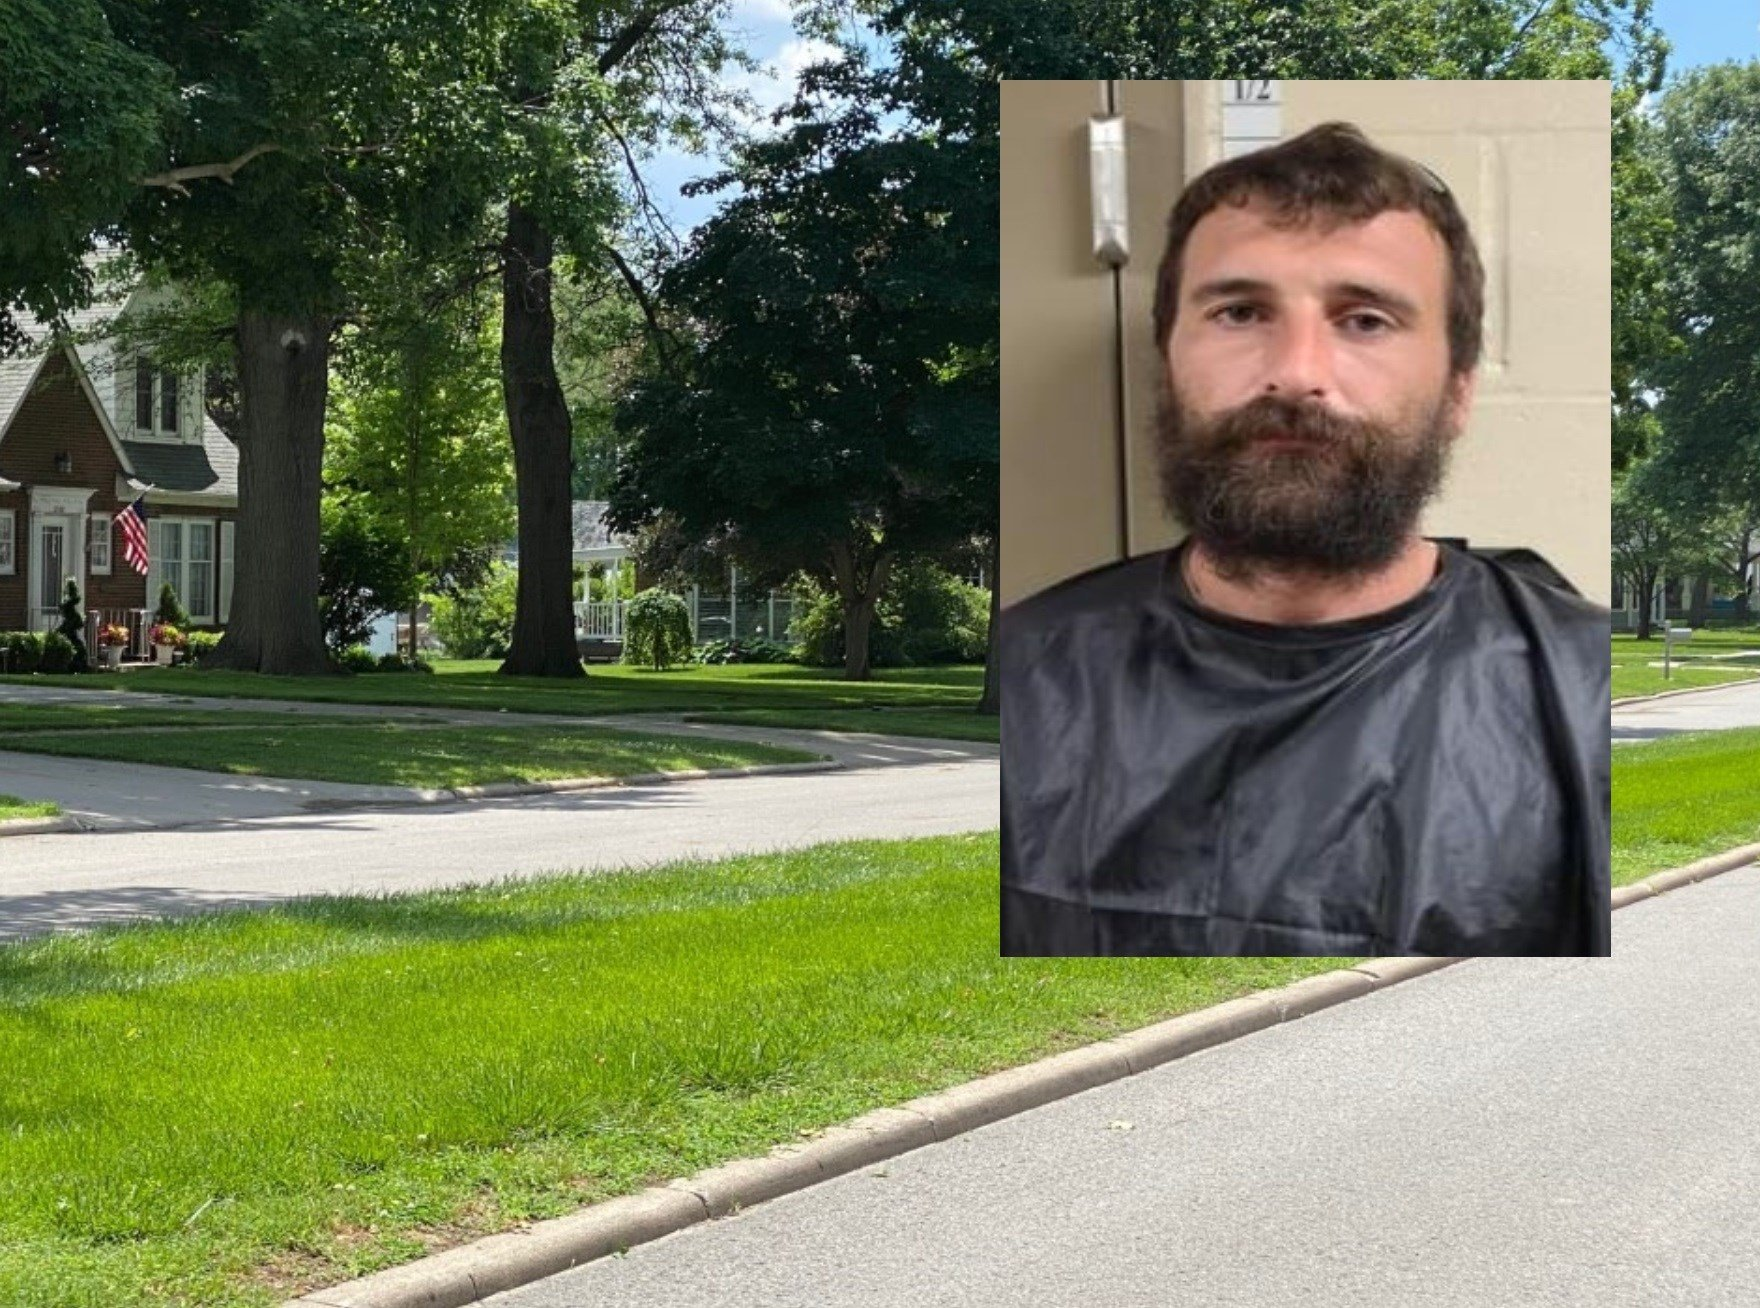 Falls City man accused of trying to run over ex-wife